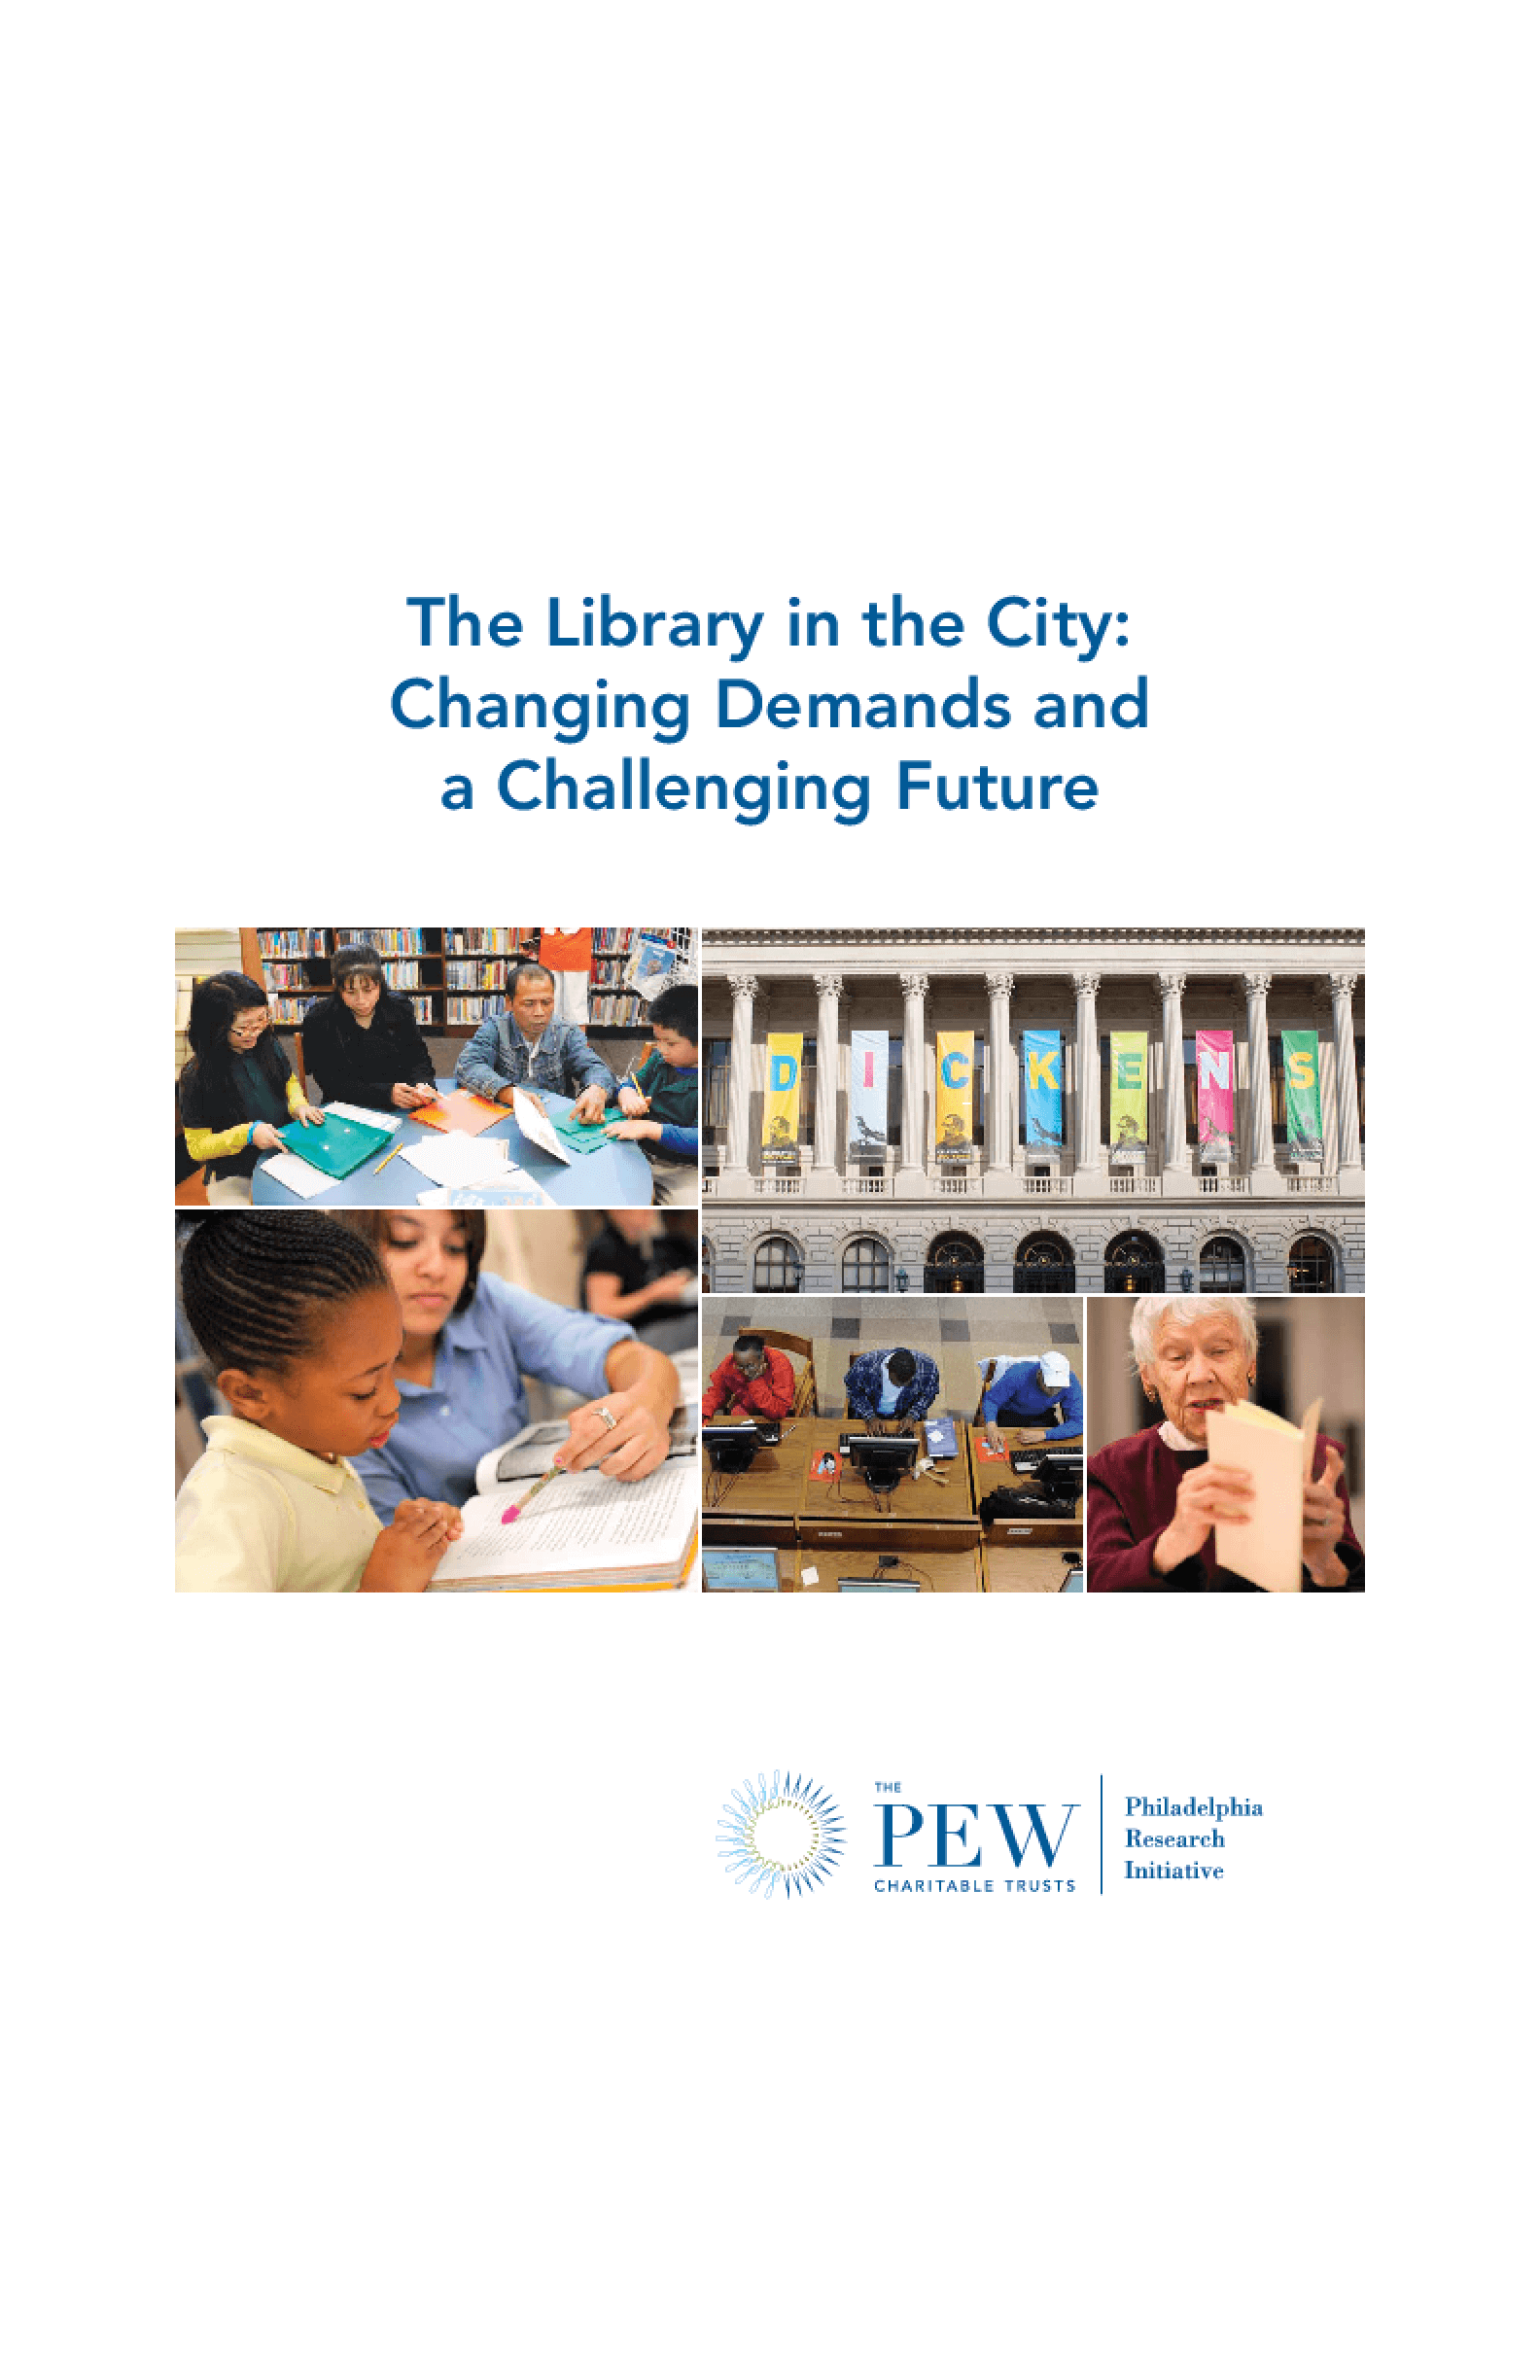 The Library in the City: Changing Demands and a Challenging Future